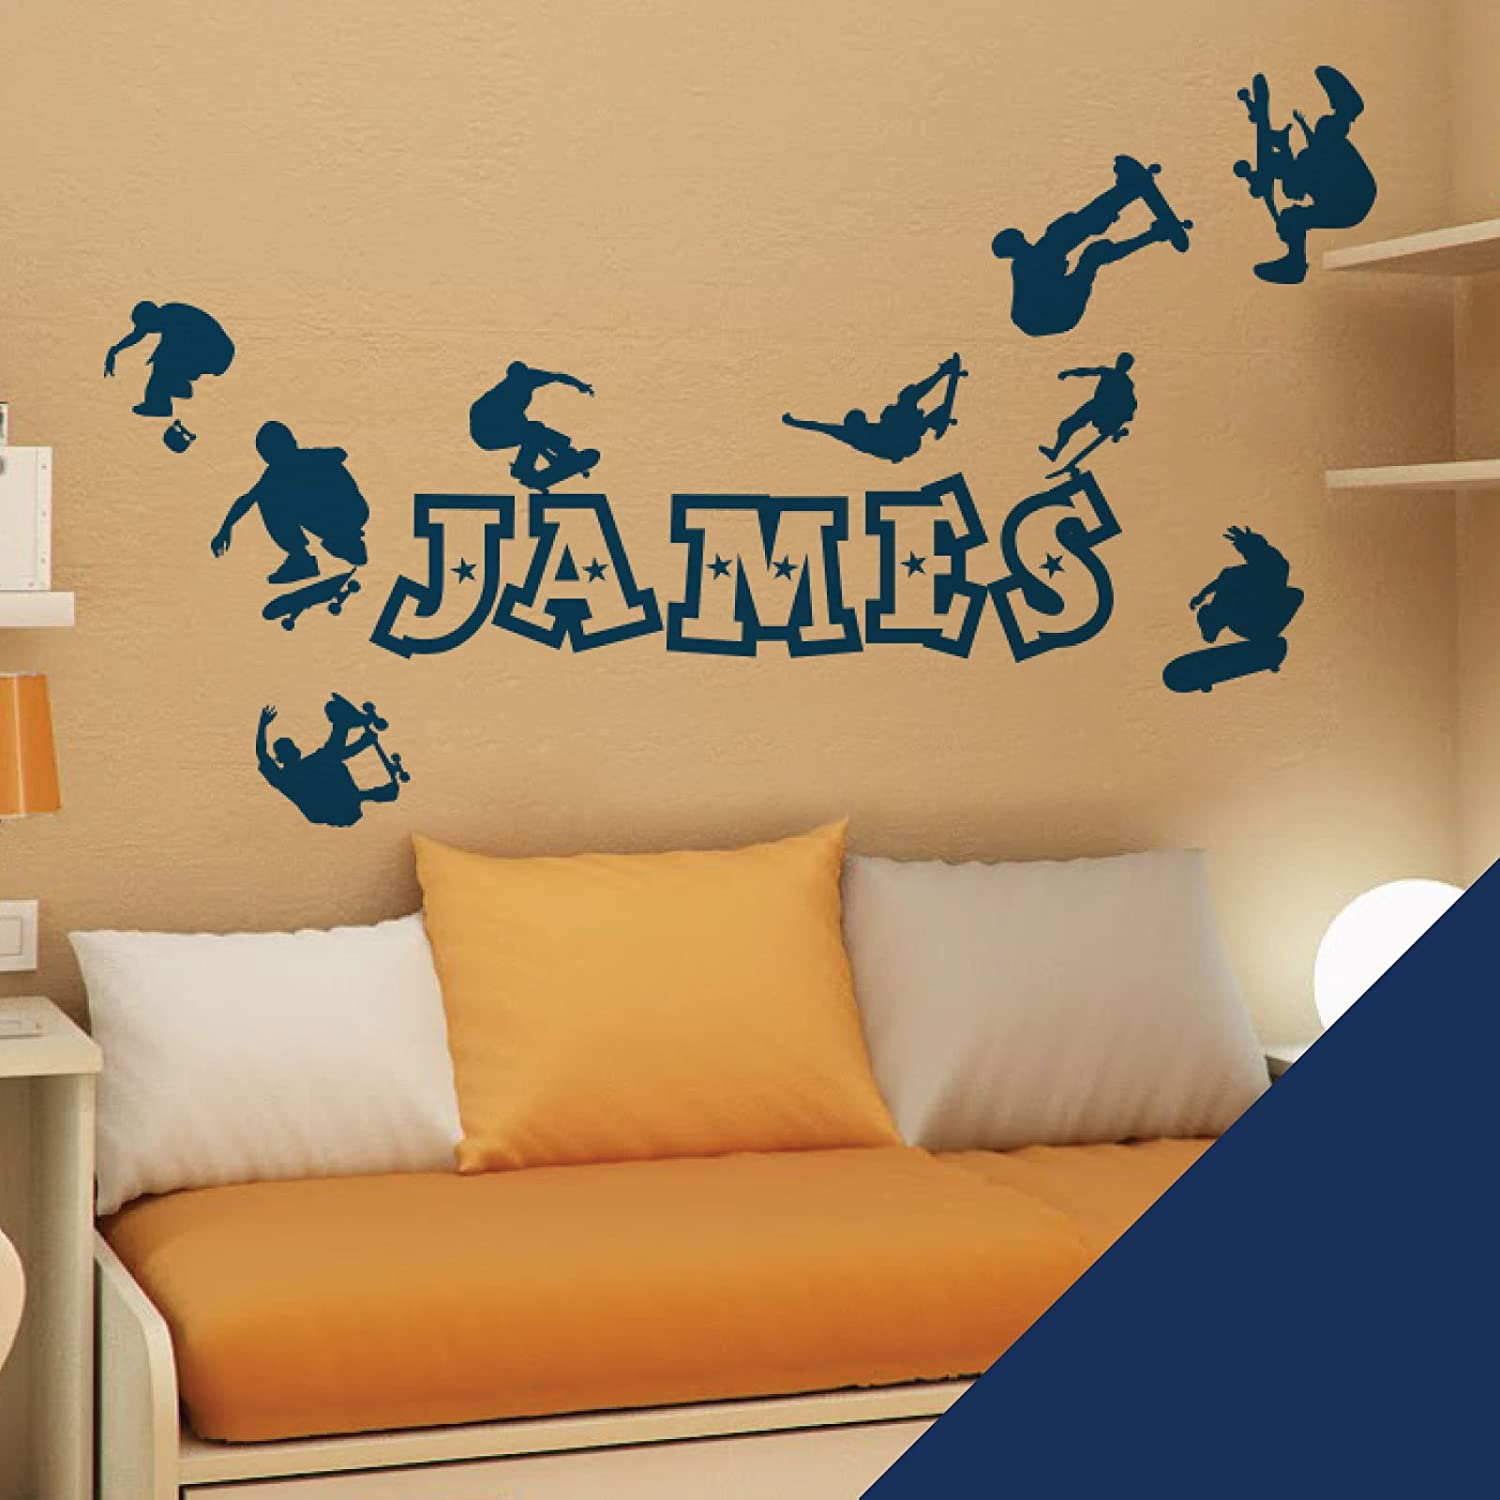 Personalised Name Boys Wall Art Sticker - Skaters, Skateboard, Park, Skate - Please message us with the name! Wall Designer